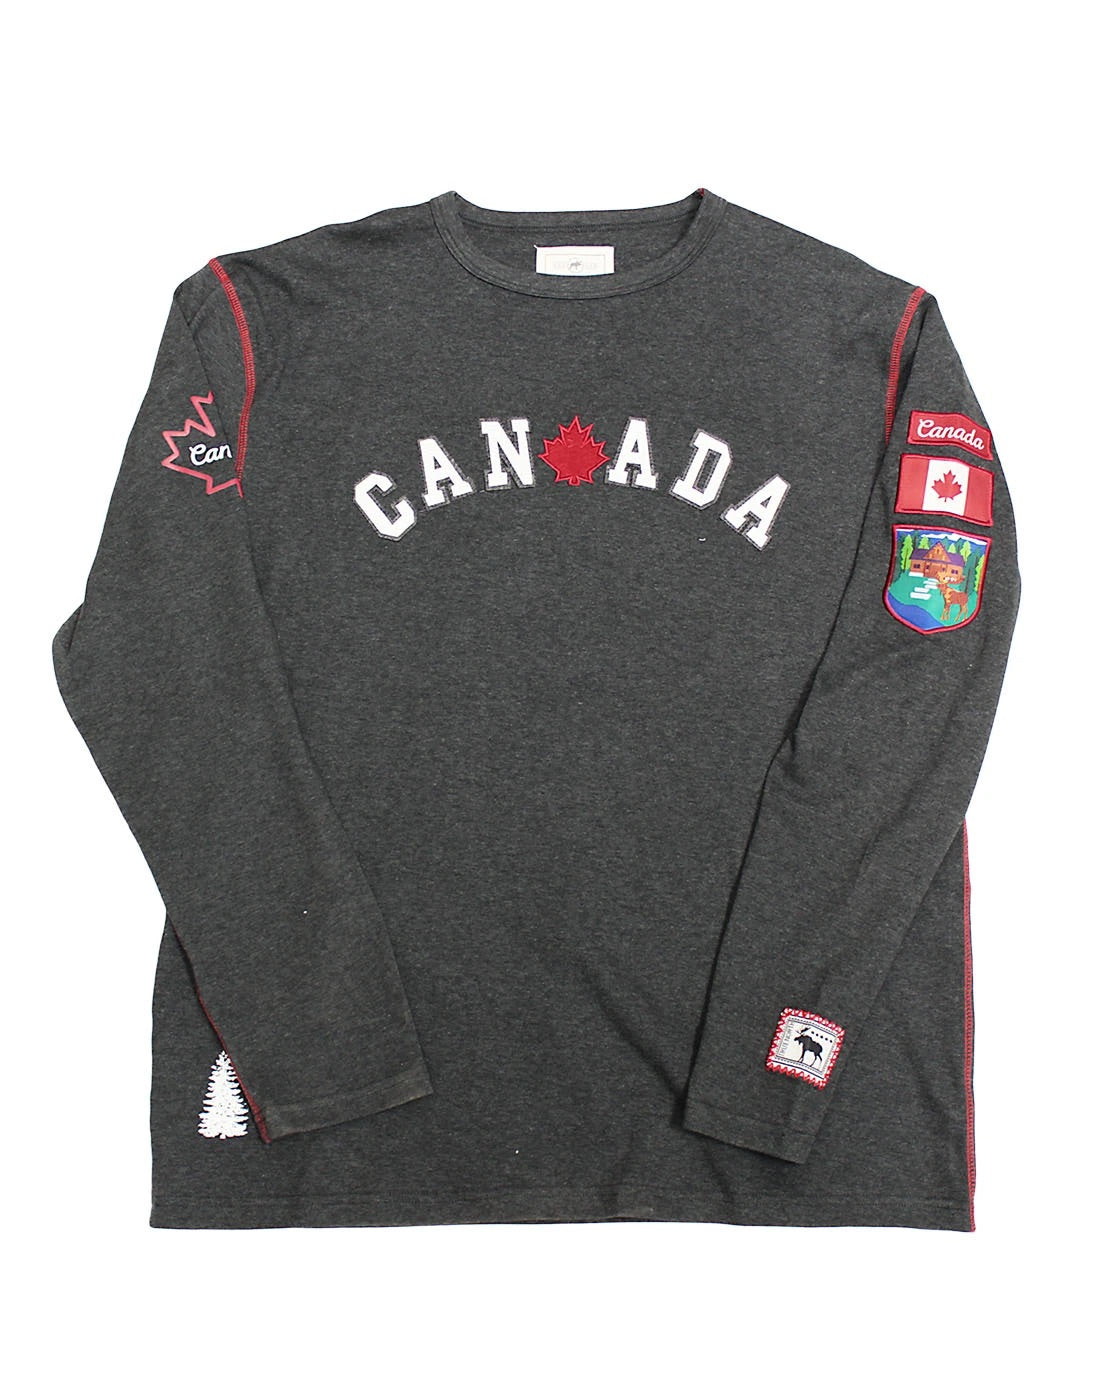 GGS - CANADA LONG SLEEVE SHIRT